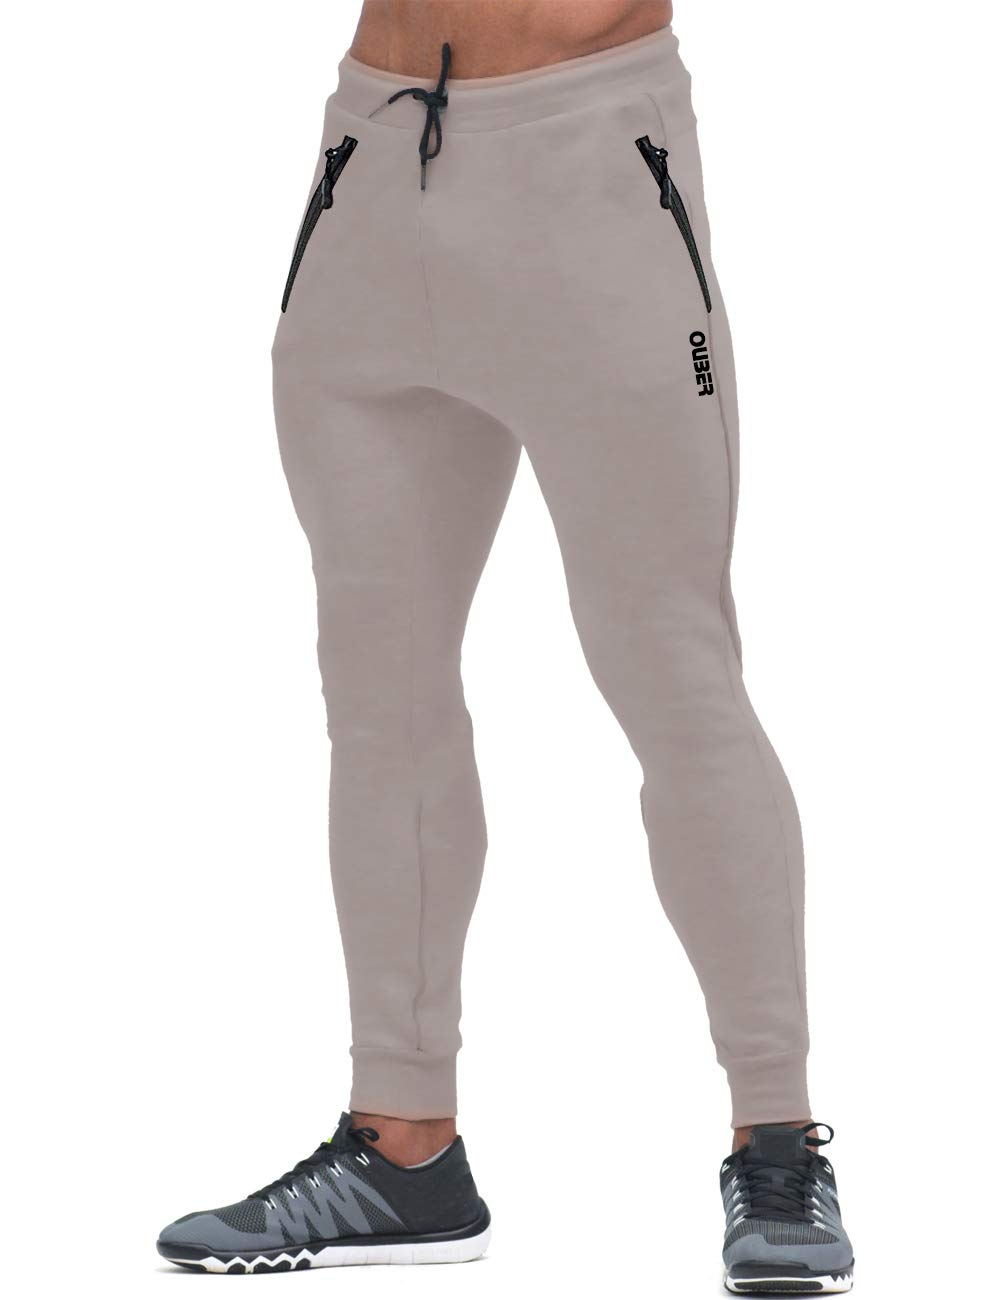 Ouber Men's Slim Fit Joggers Workout Sports Fleece Sweatpants for Gym Training (Grey,S)